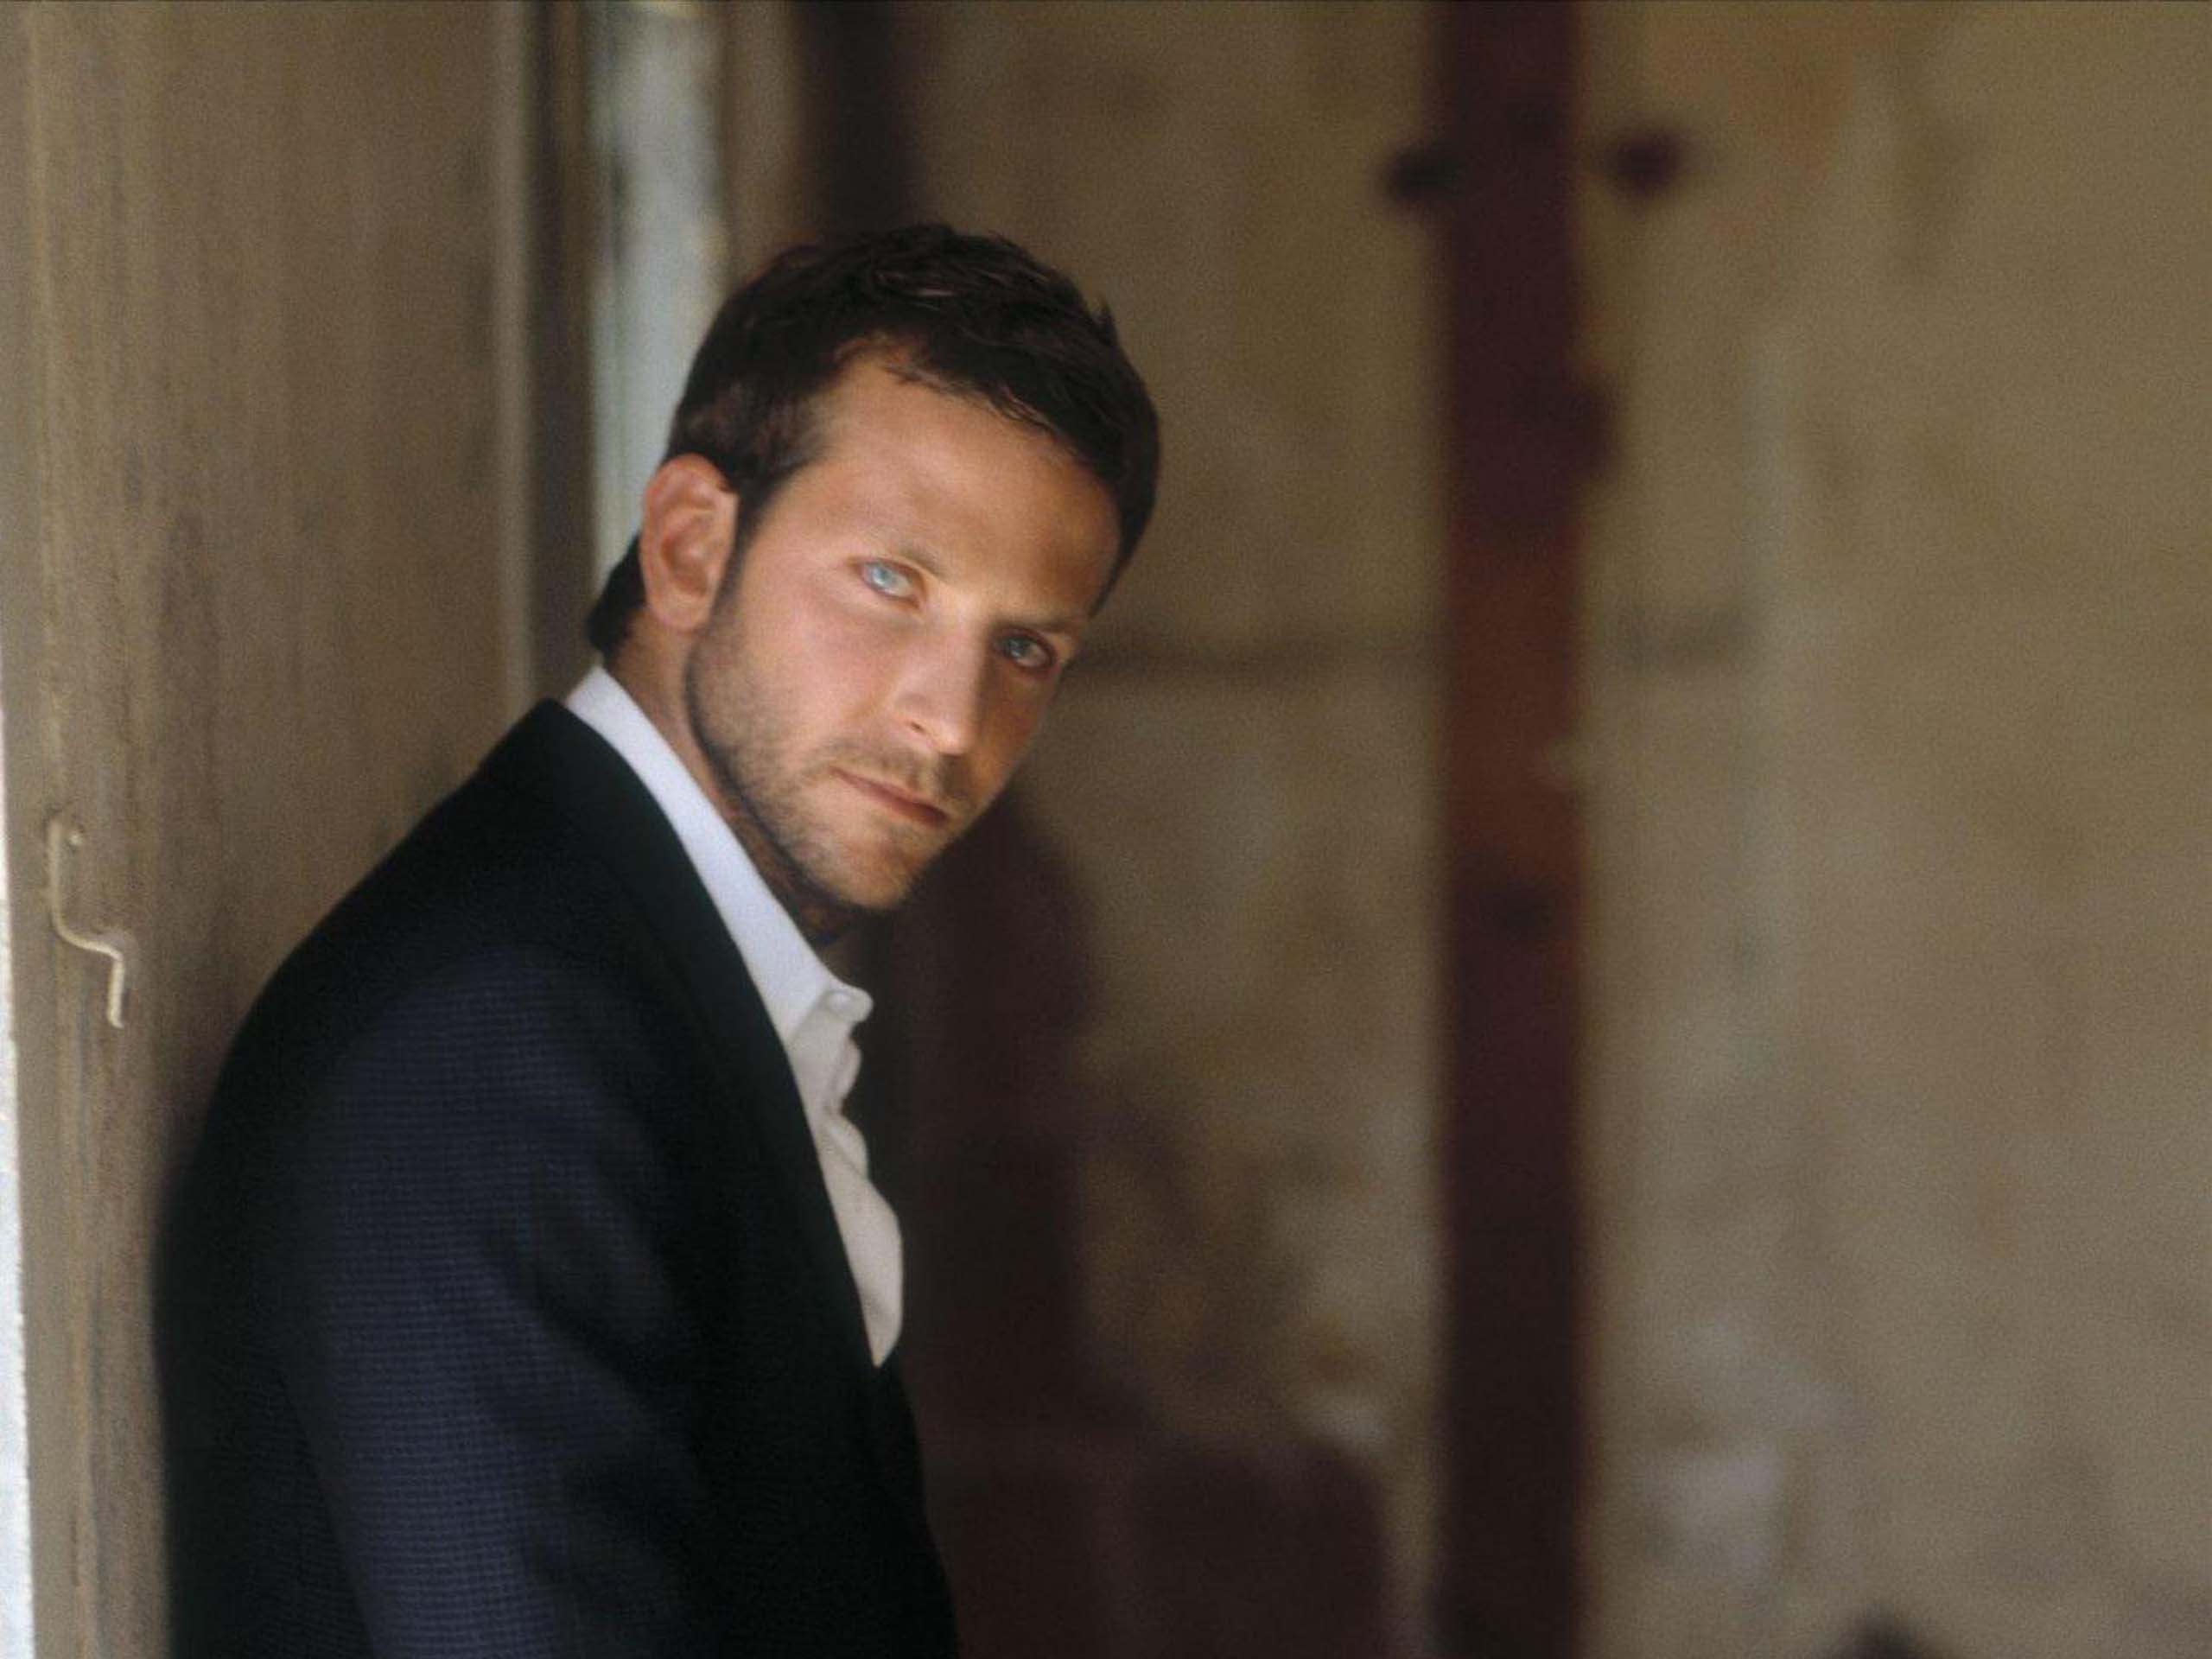 Bradley Cooper Wallpapers High Resolution and Quality Download 2560x1920